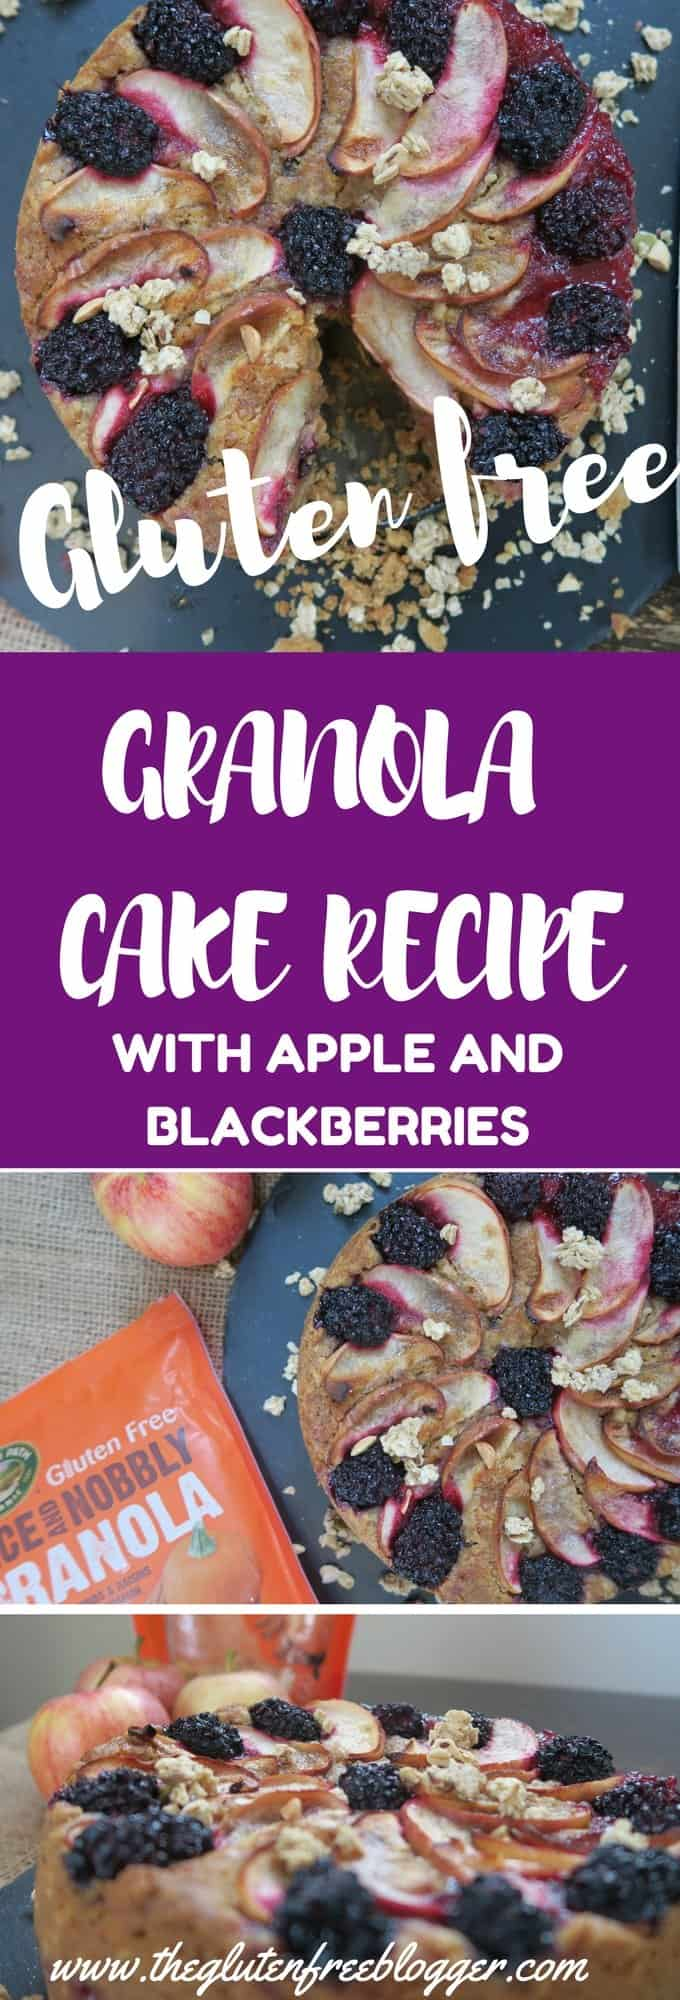 Gluten free granola cake recipe with apple and blackberries - autumn recipes - egg free - www.theglutenfreeblogger.com (1)